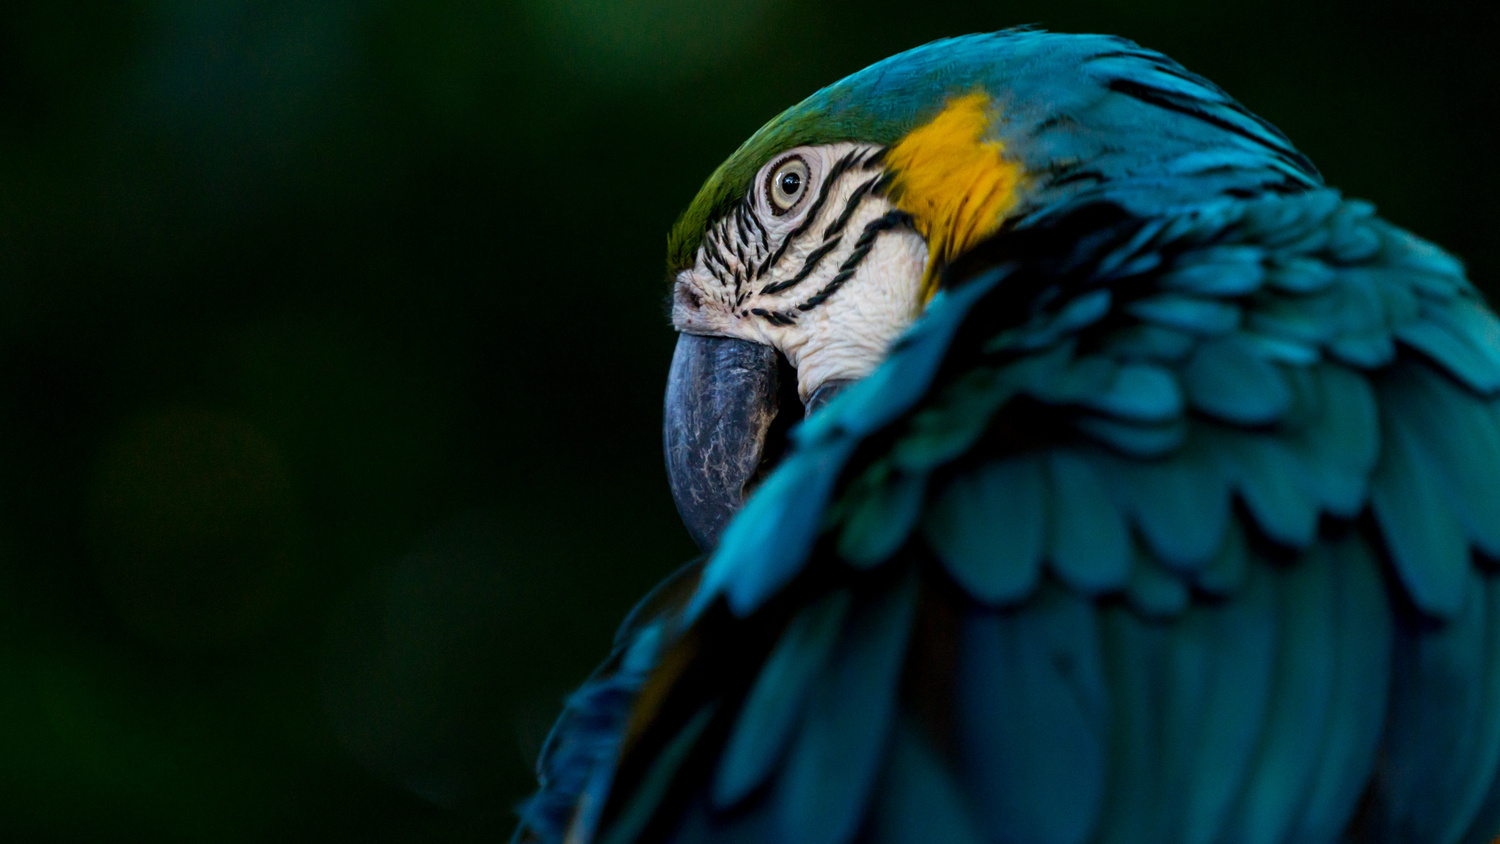 Blue-and-yellow Macaw by Andreas Mariotti